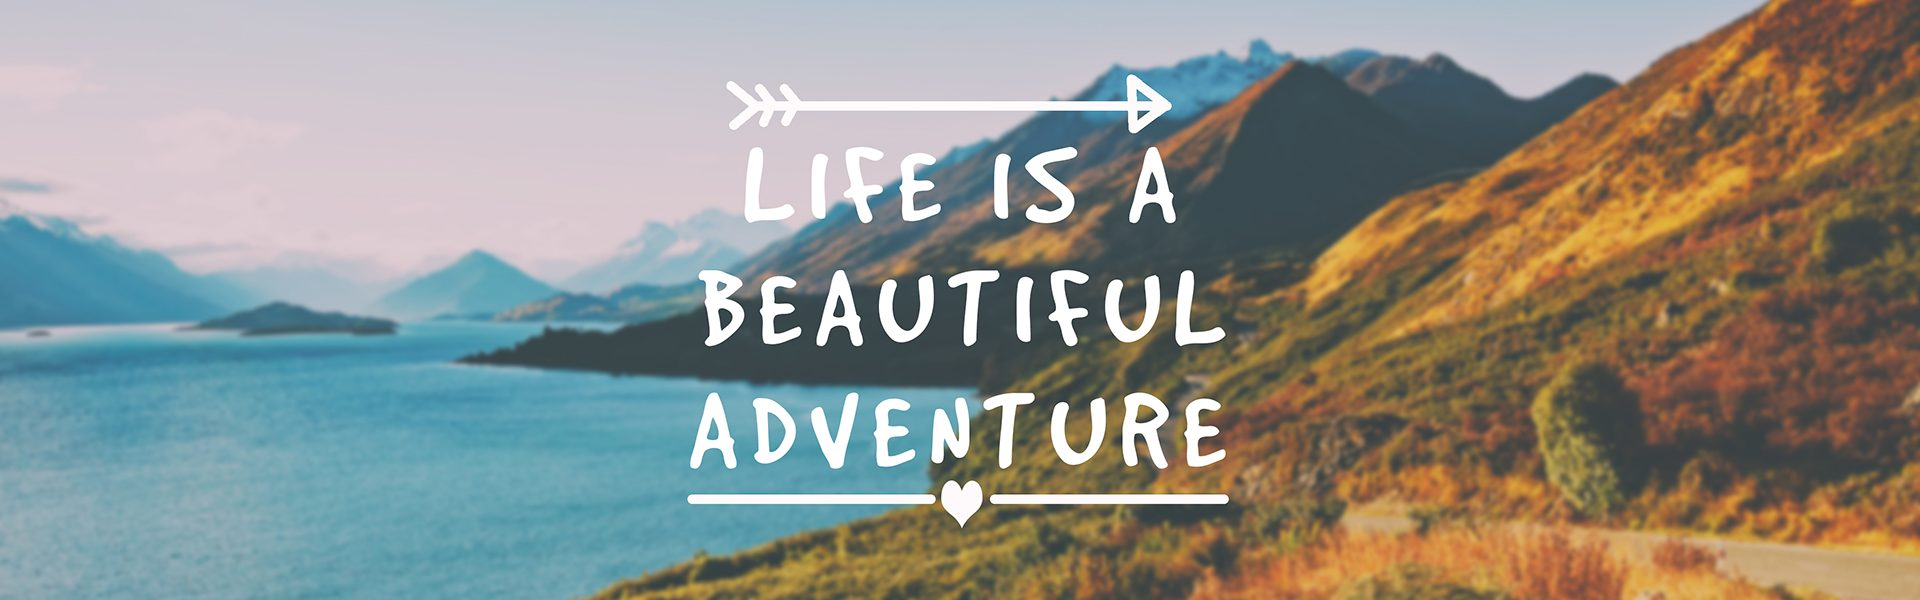 Life is a beautiful adventure